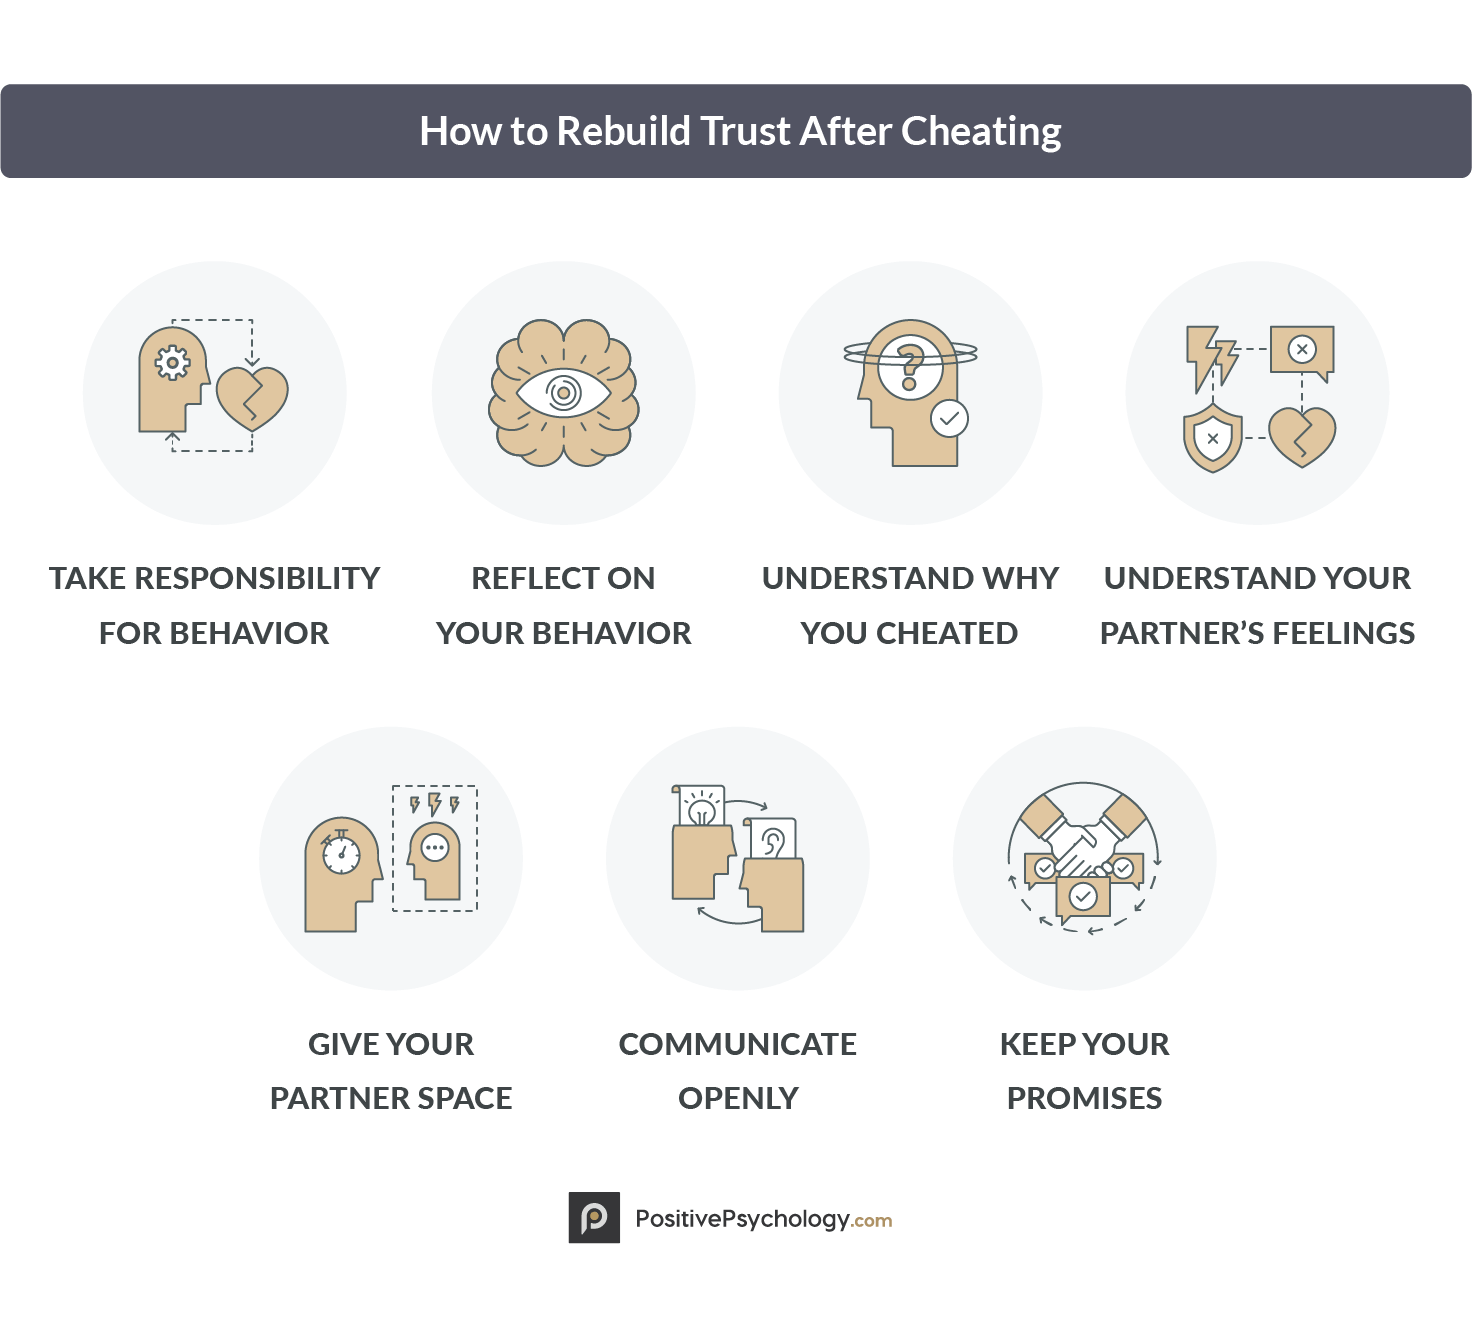 How to Rebuild Trust After Cheating